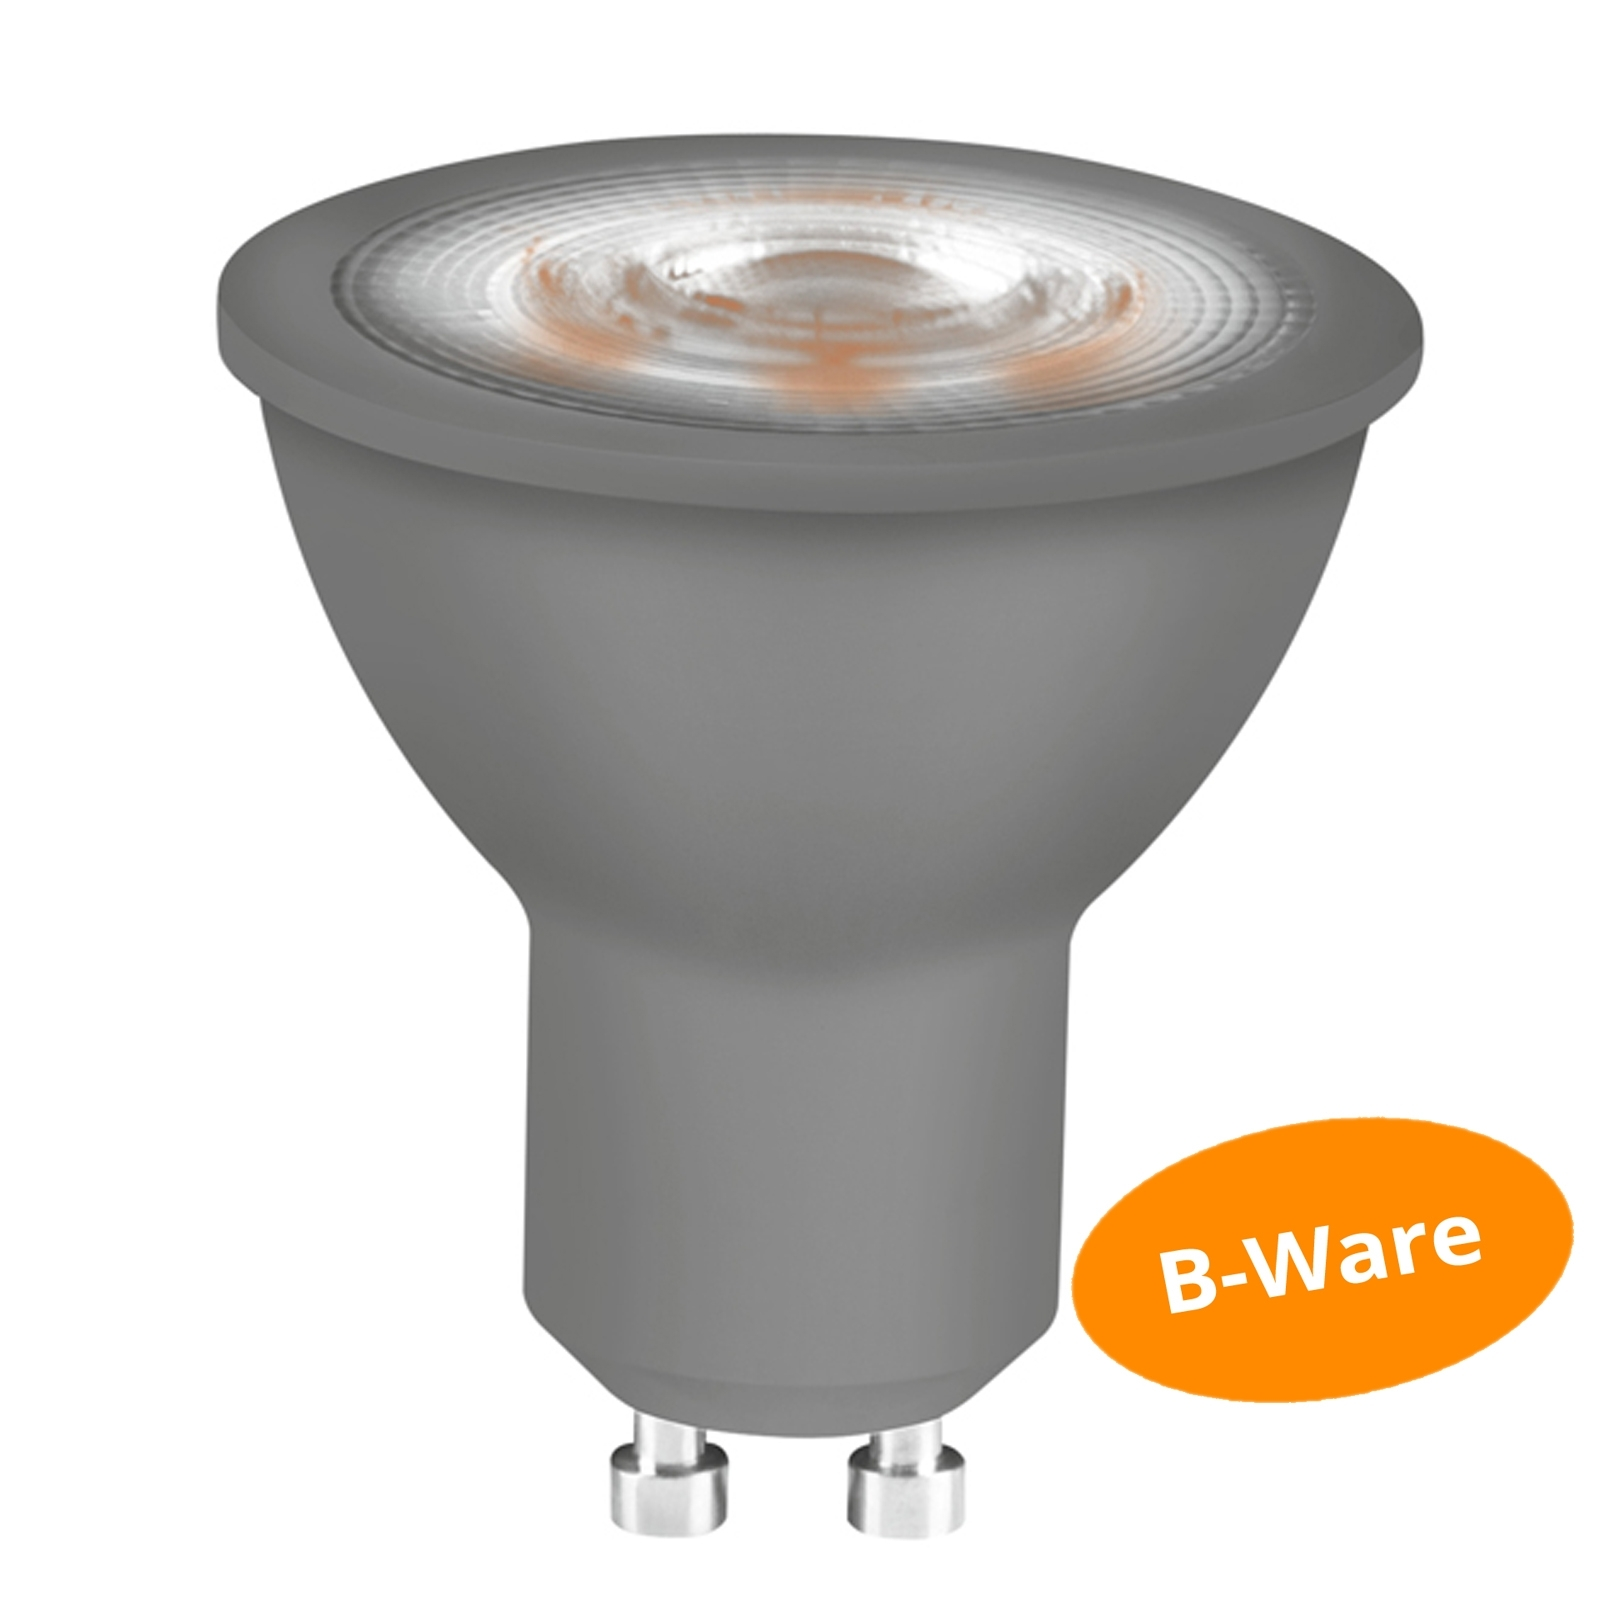 osram led superstar par16 glowdim gu10 5 5 w wie 50 w 380 lm warmwei dimmbar ebay. Black Bedroom Furniture Sets. Home Design Ideas